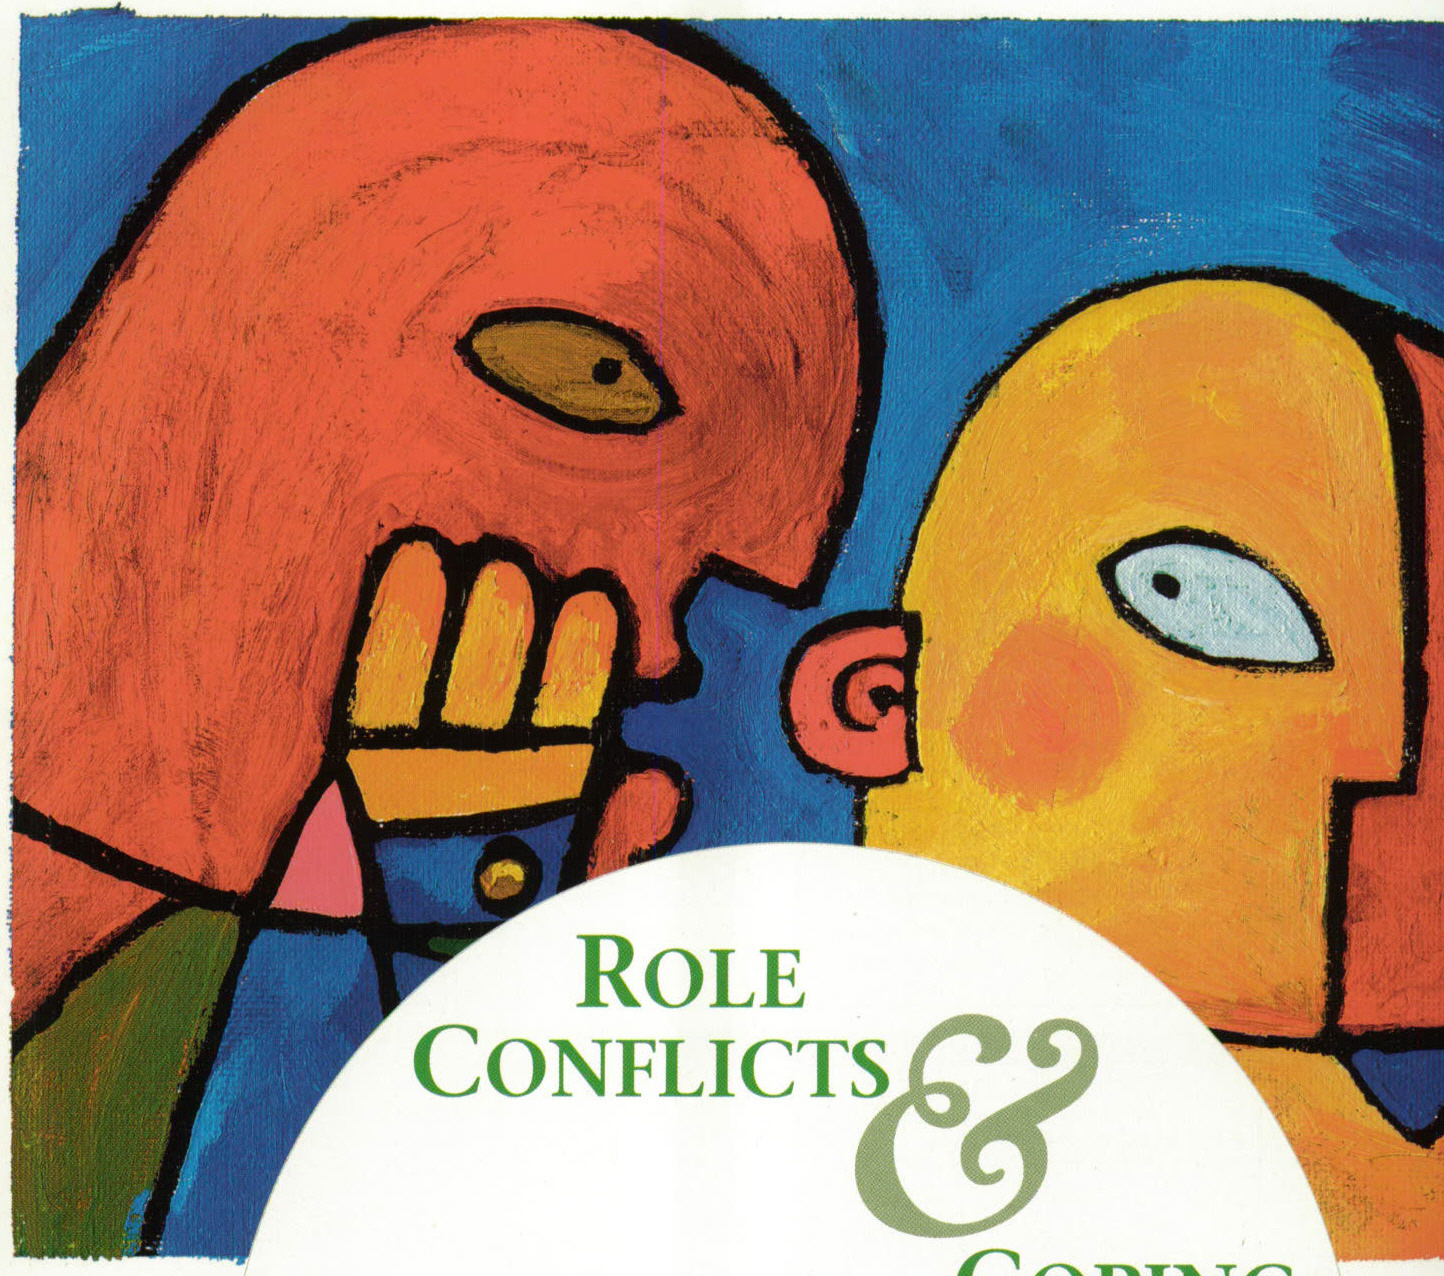 Role conflicts coping strategies in caregiving a symbolic figurestables biocorpaavc Image collections